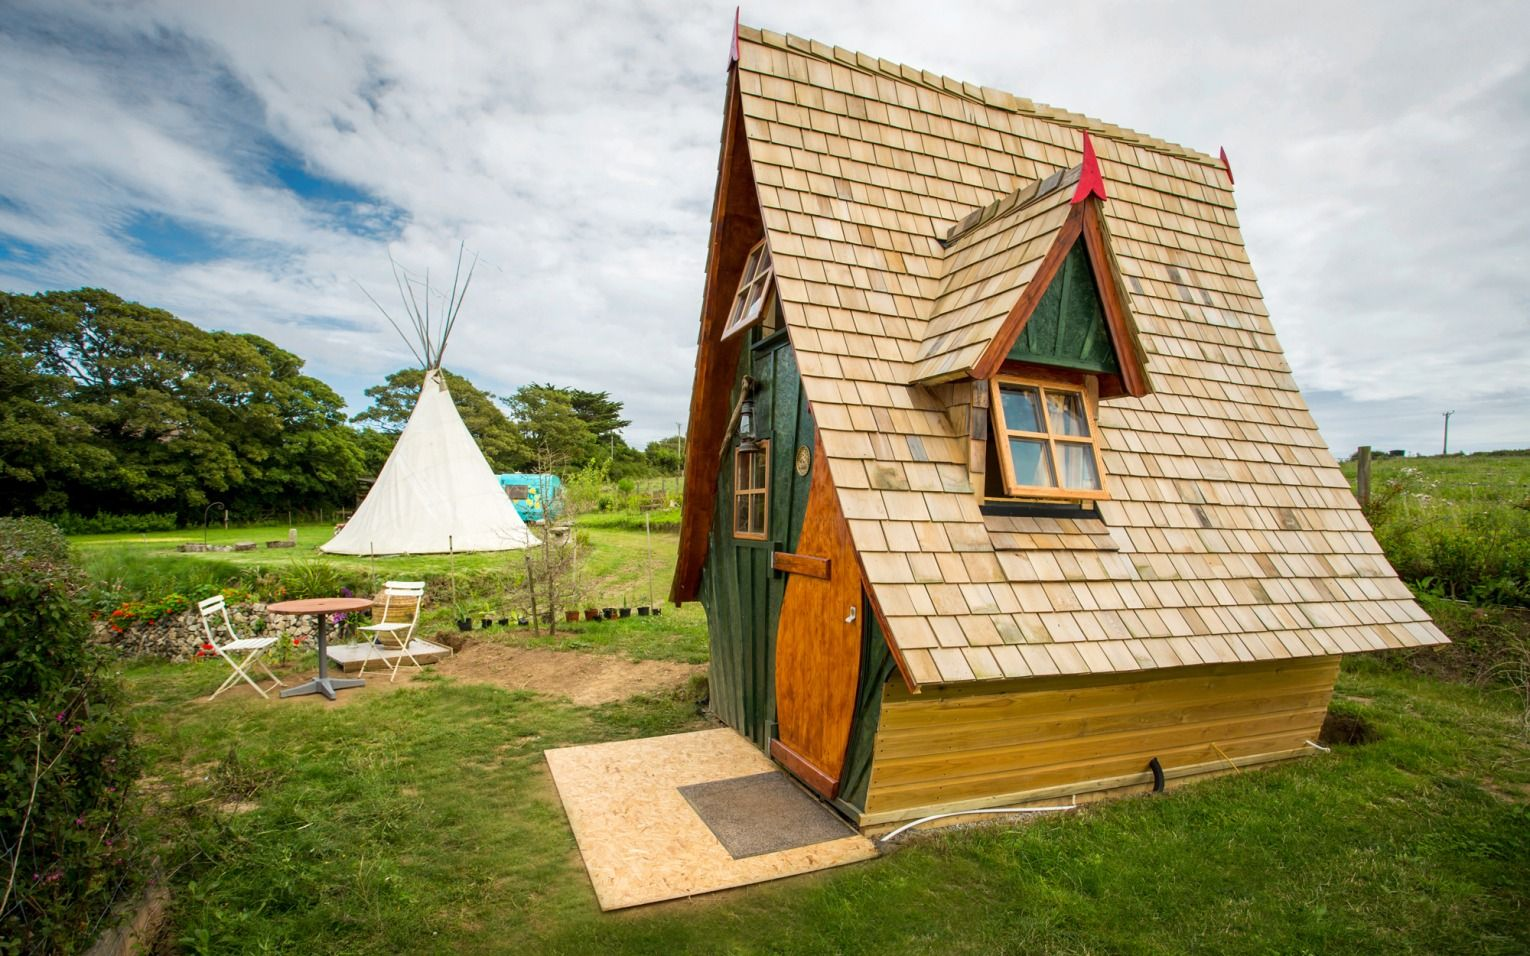 The Most Beautiful Airbnb Rentals In Europe Airbnb